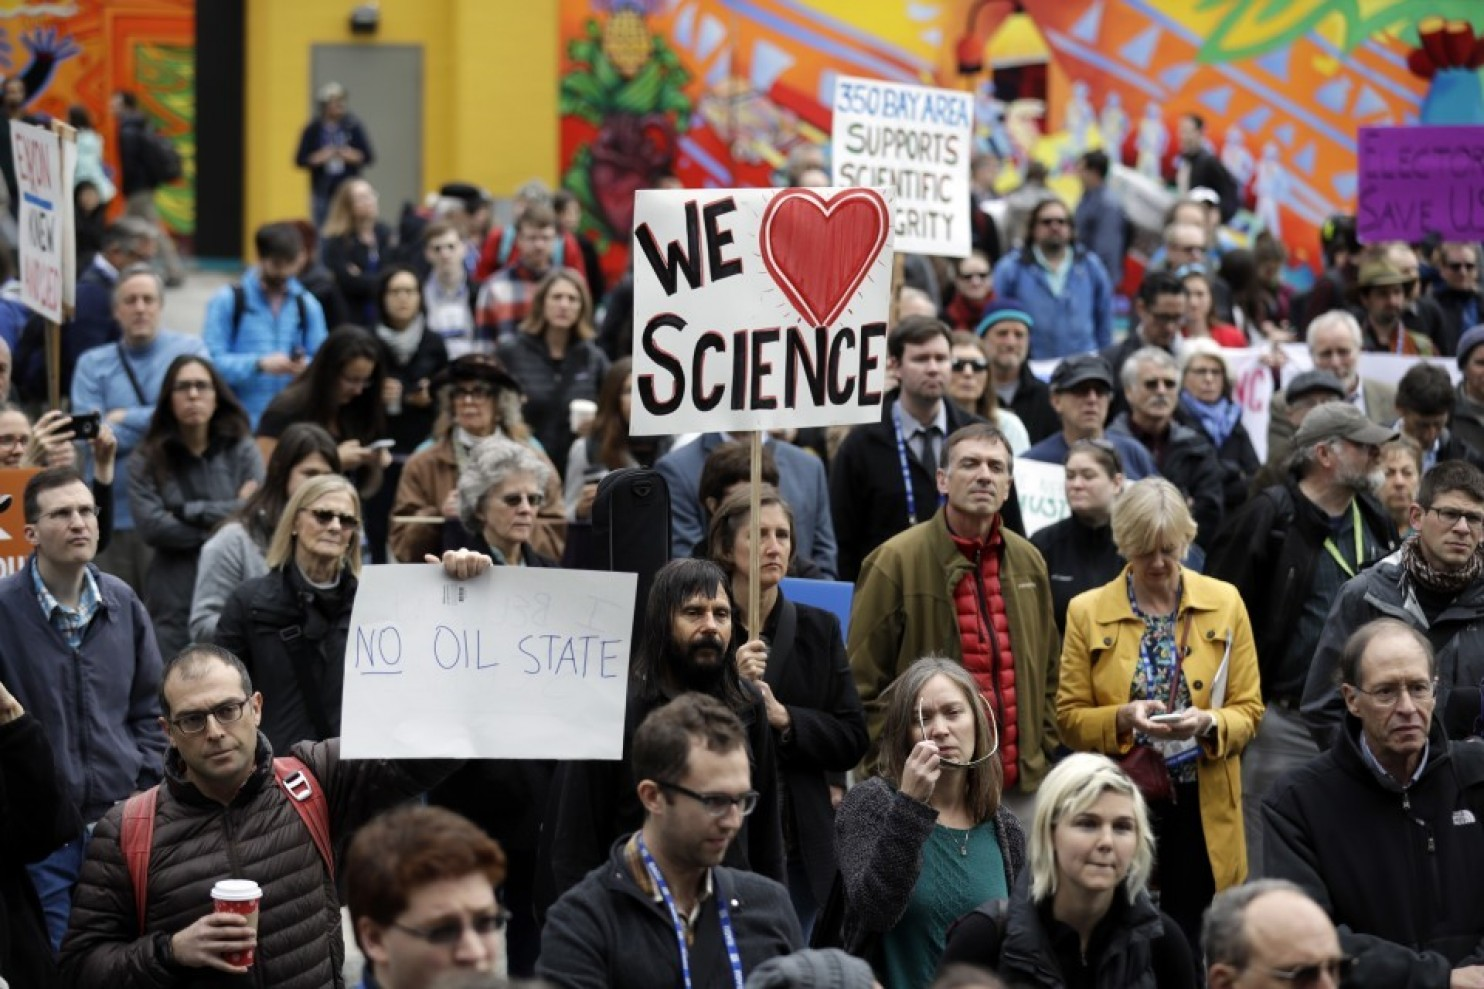 Scientists Are Planning To March In Protest Of Climate Change Denial